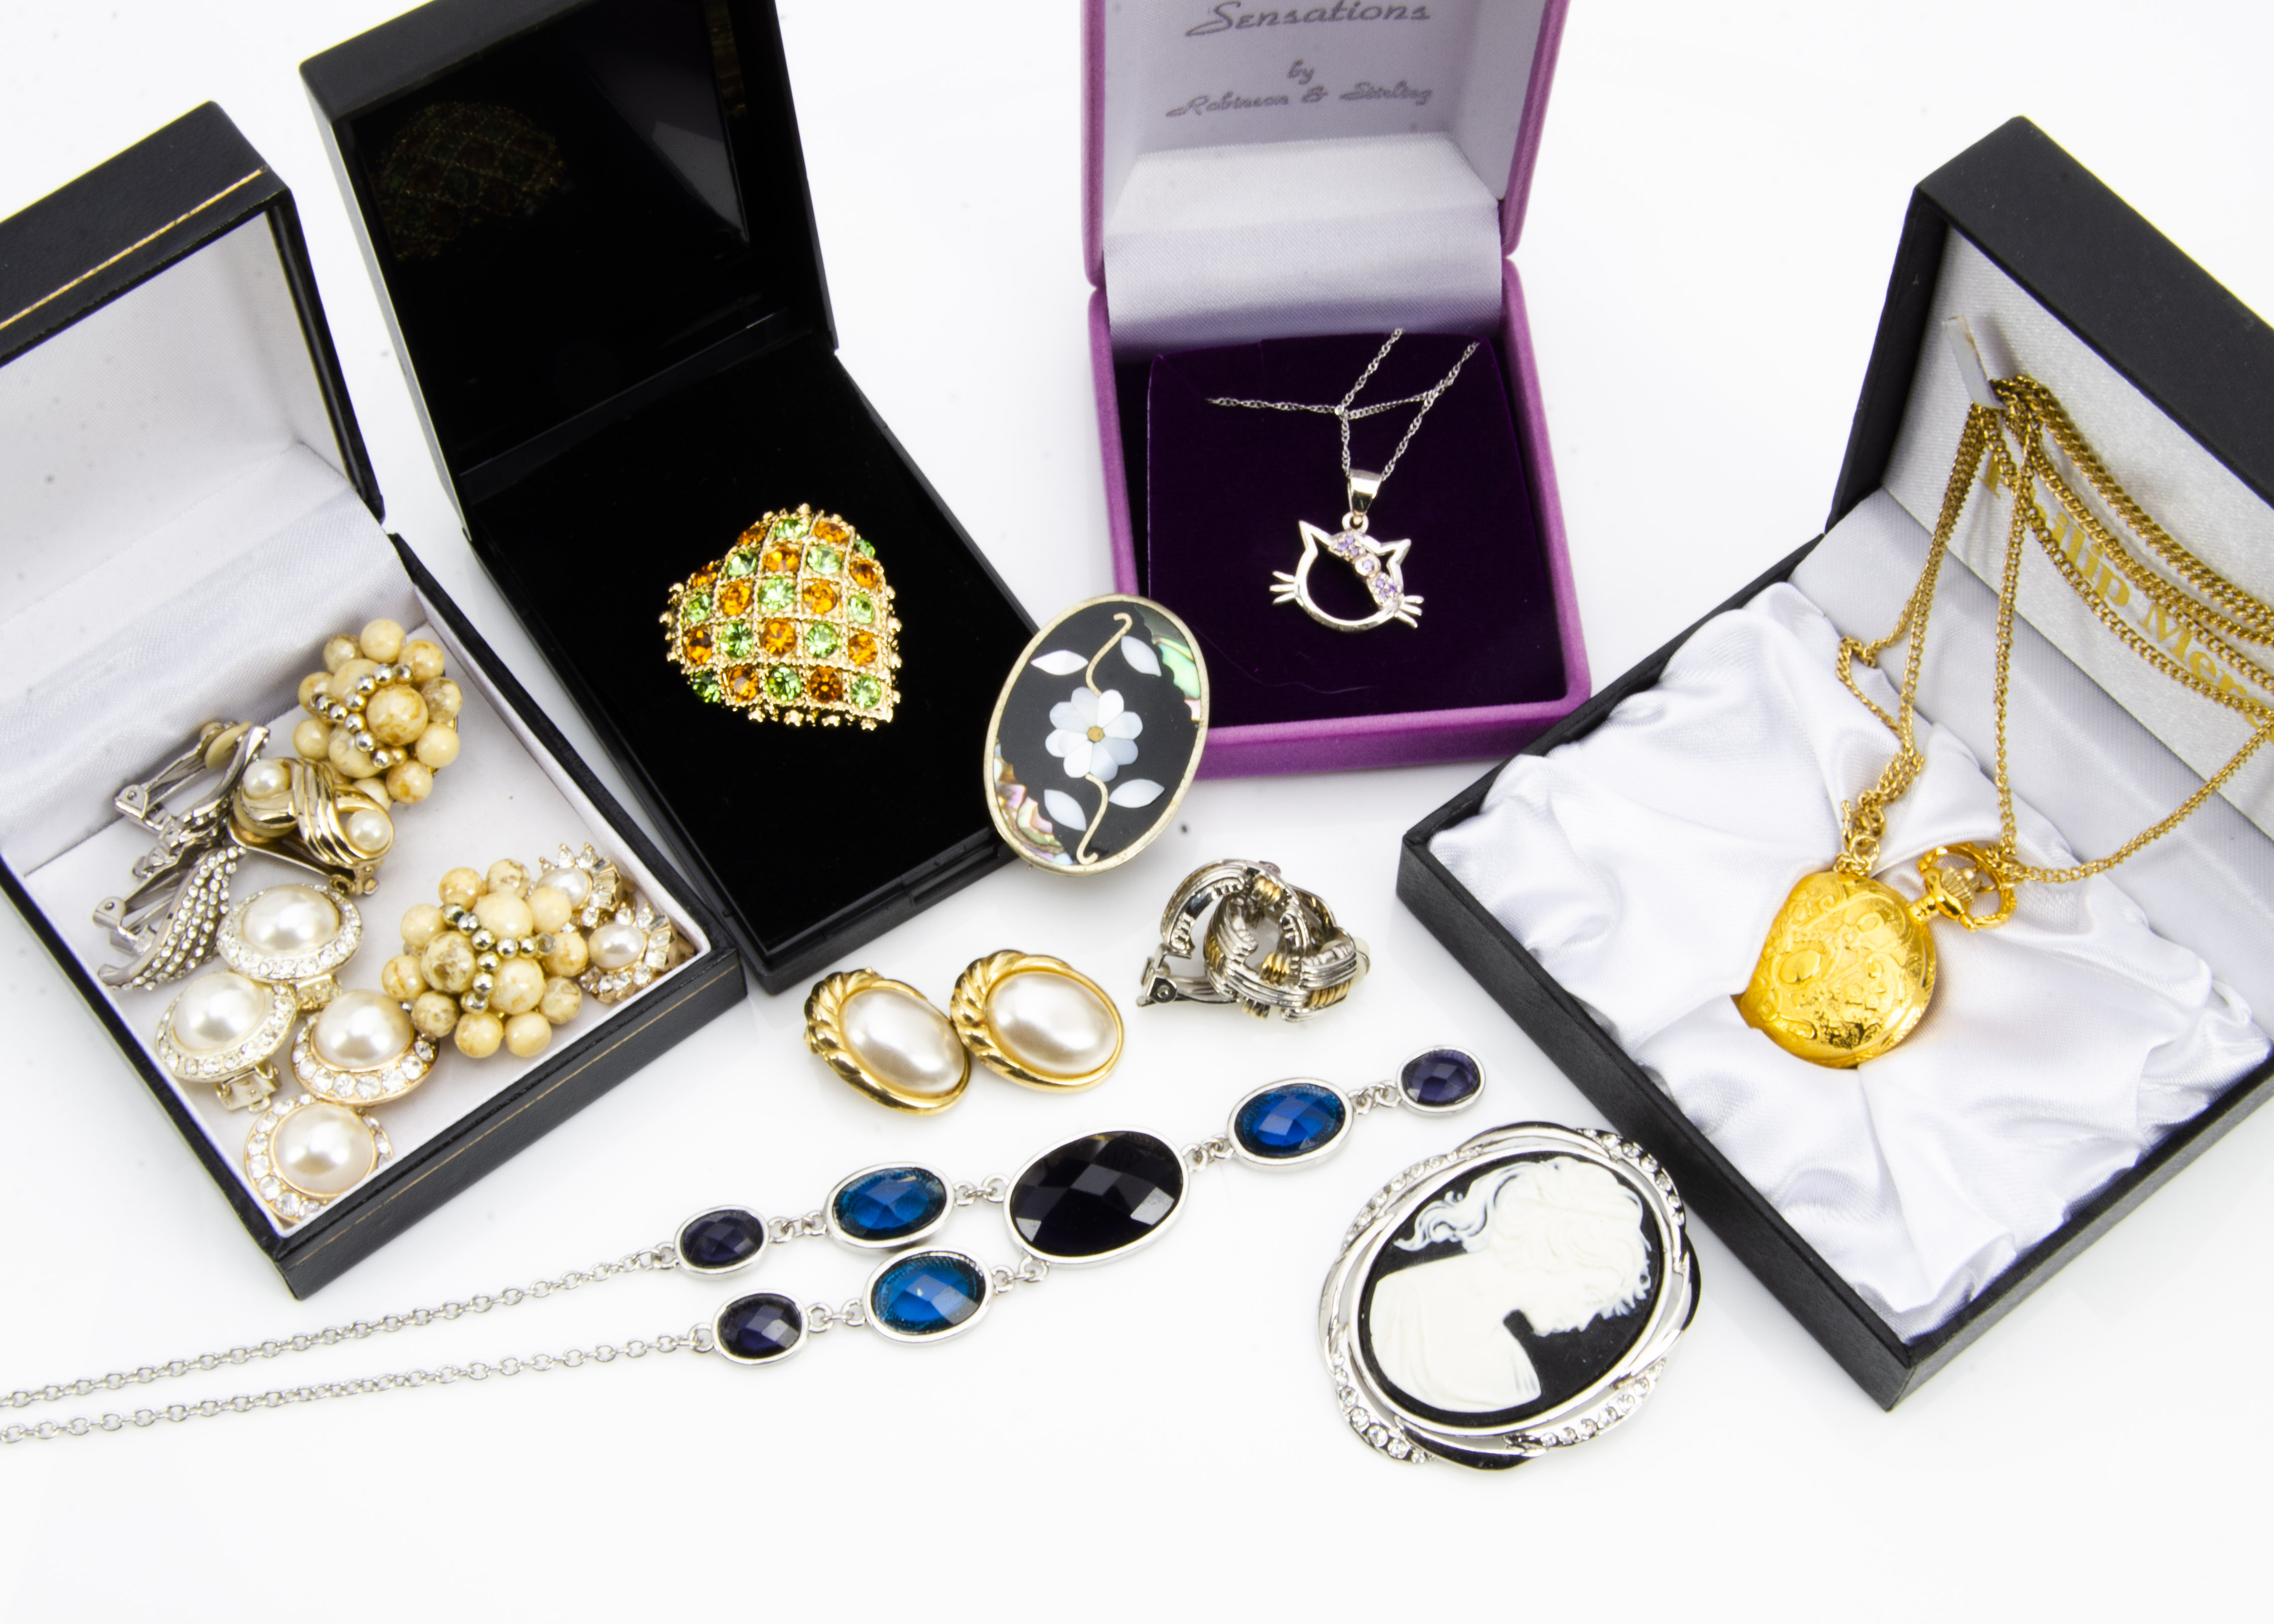 Lot 270 - A large collection of costume jewellery, including silver gem set rings, a collection of novelty and